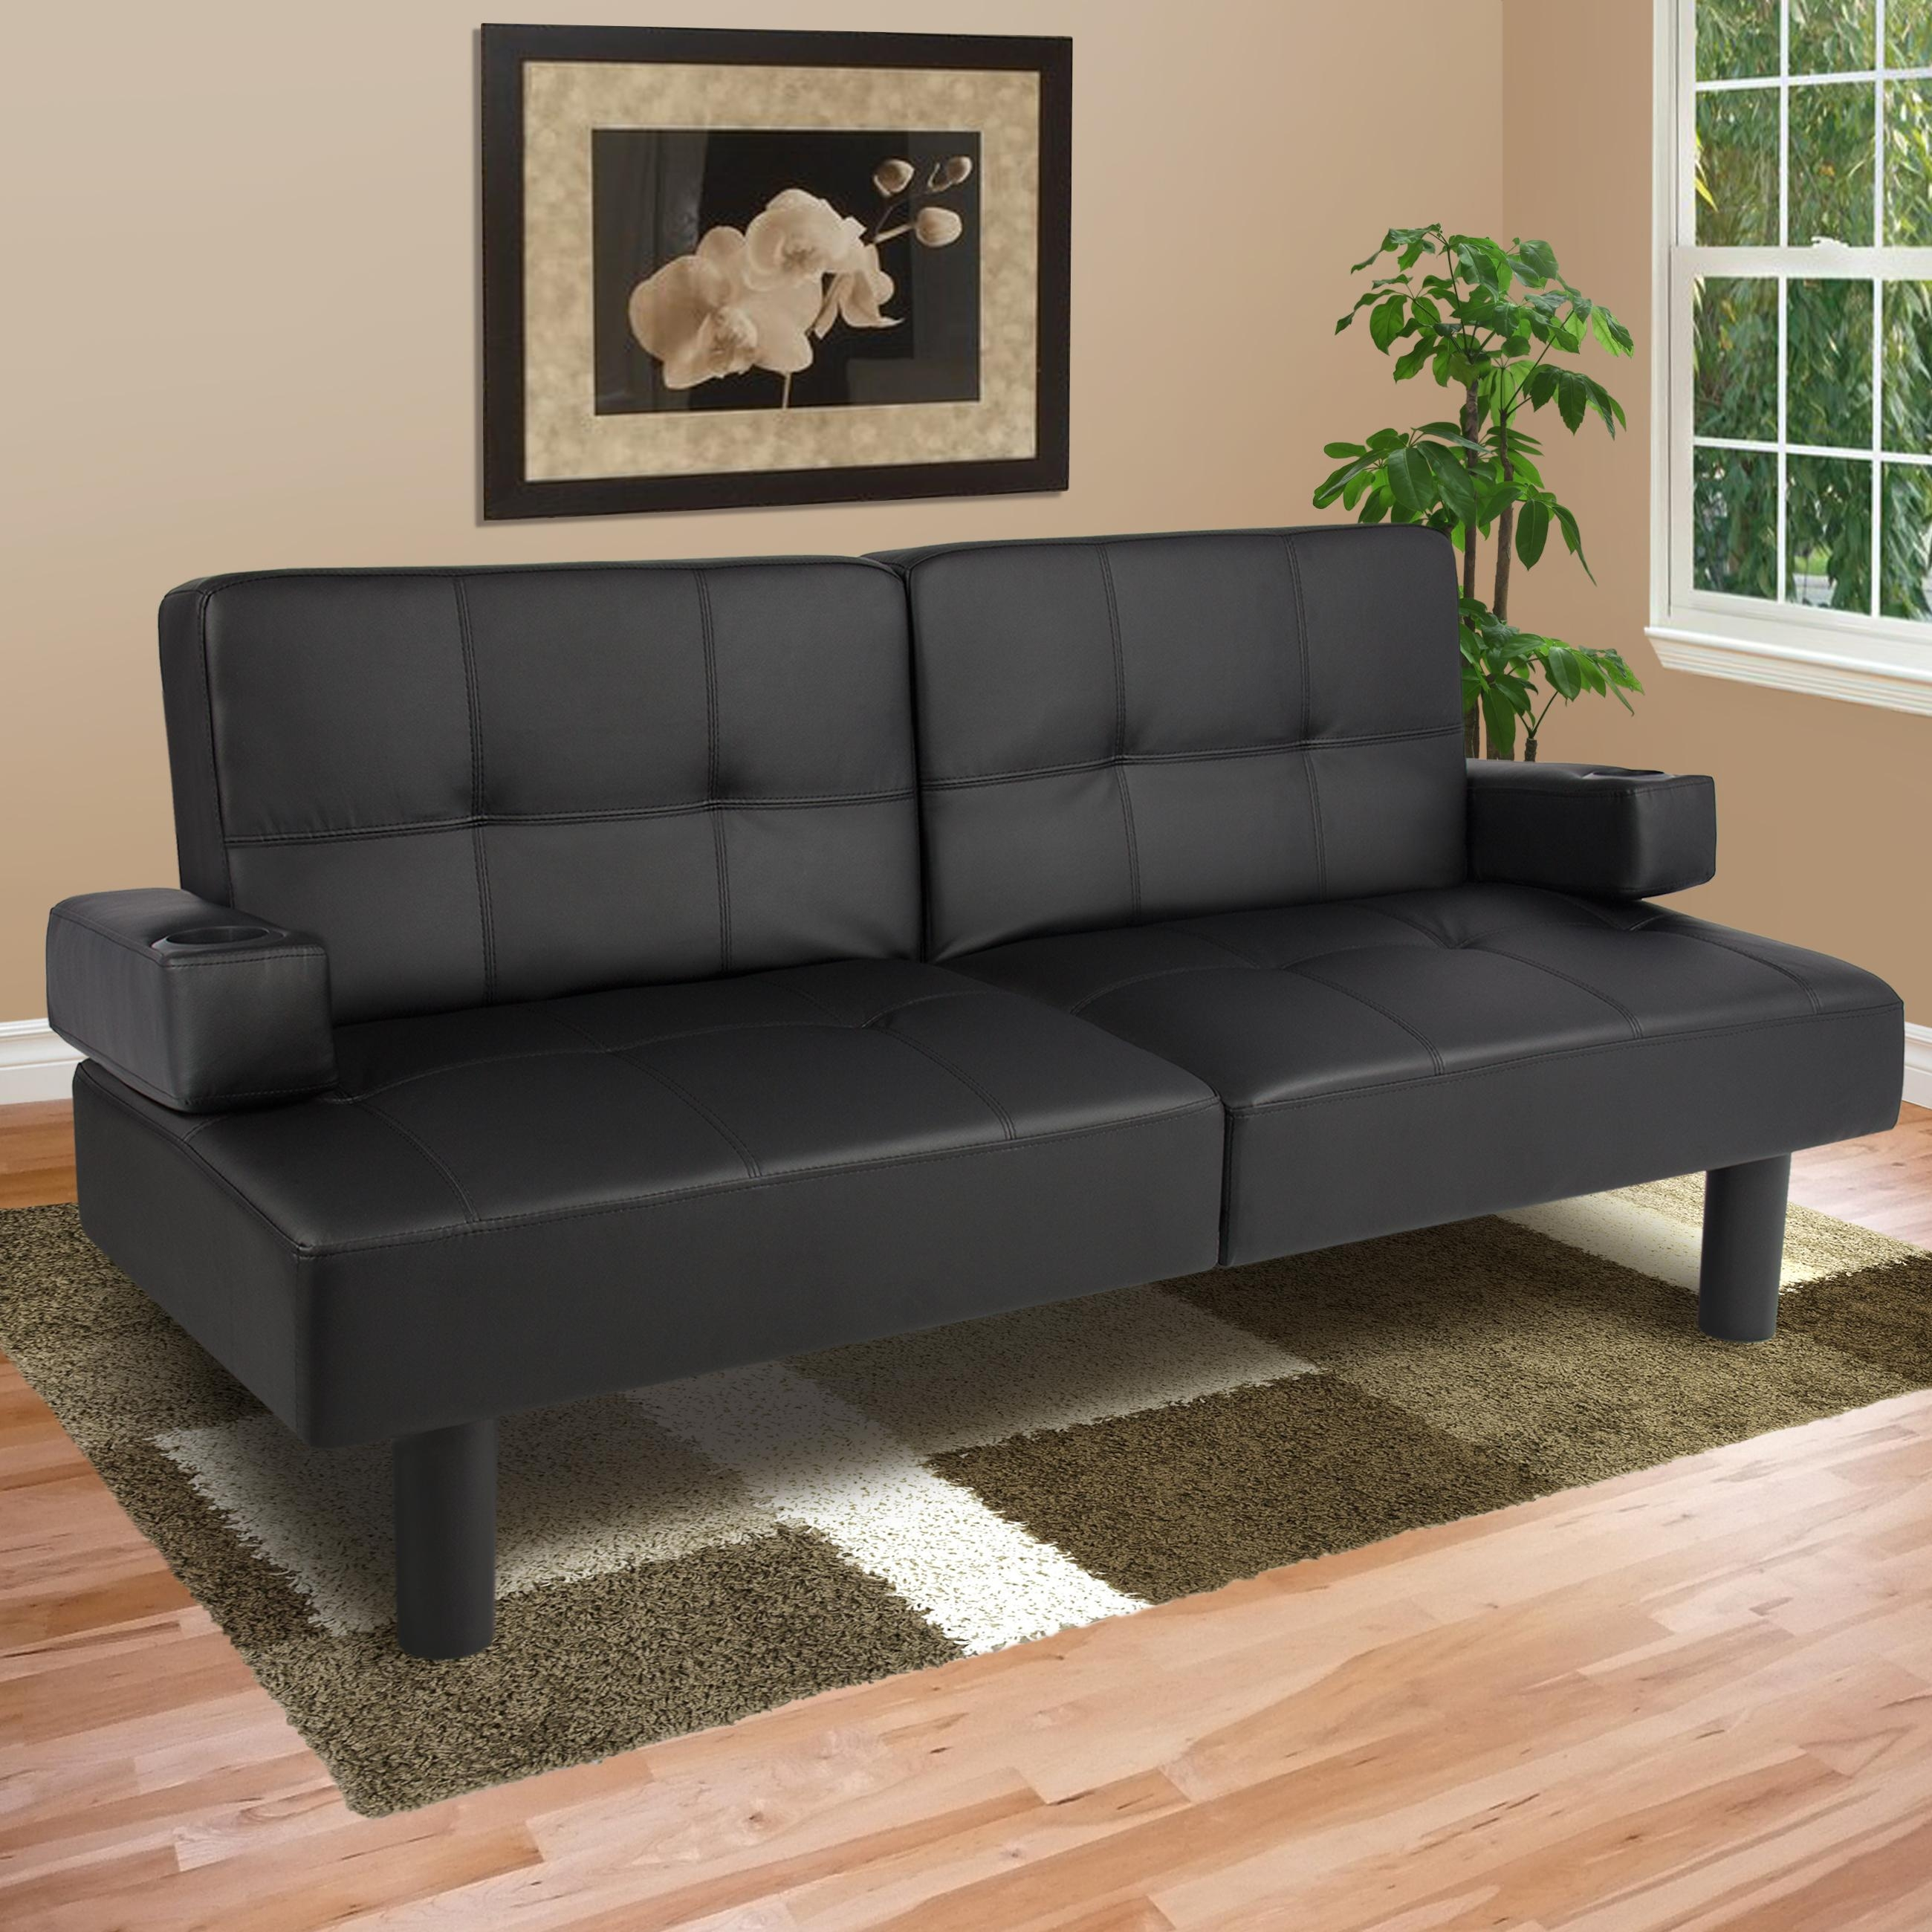 Best Choice Products Modern Leather Futon Sofa Bed Fold Up & Down With Regard To Small Black Futon Sofa Beds (Image 2 of 20)